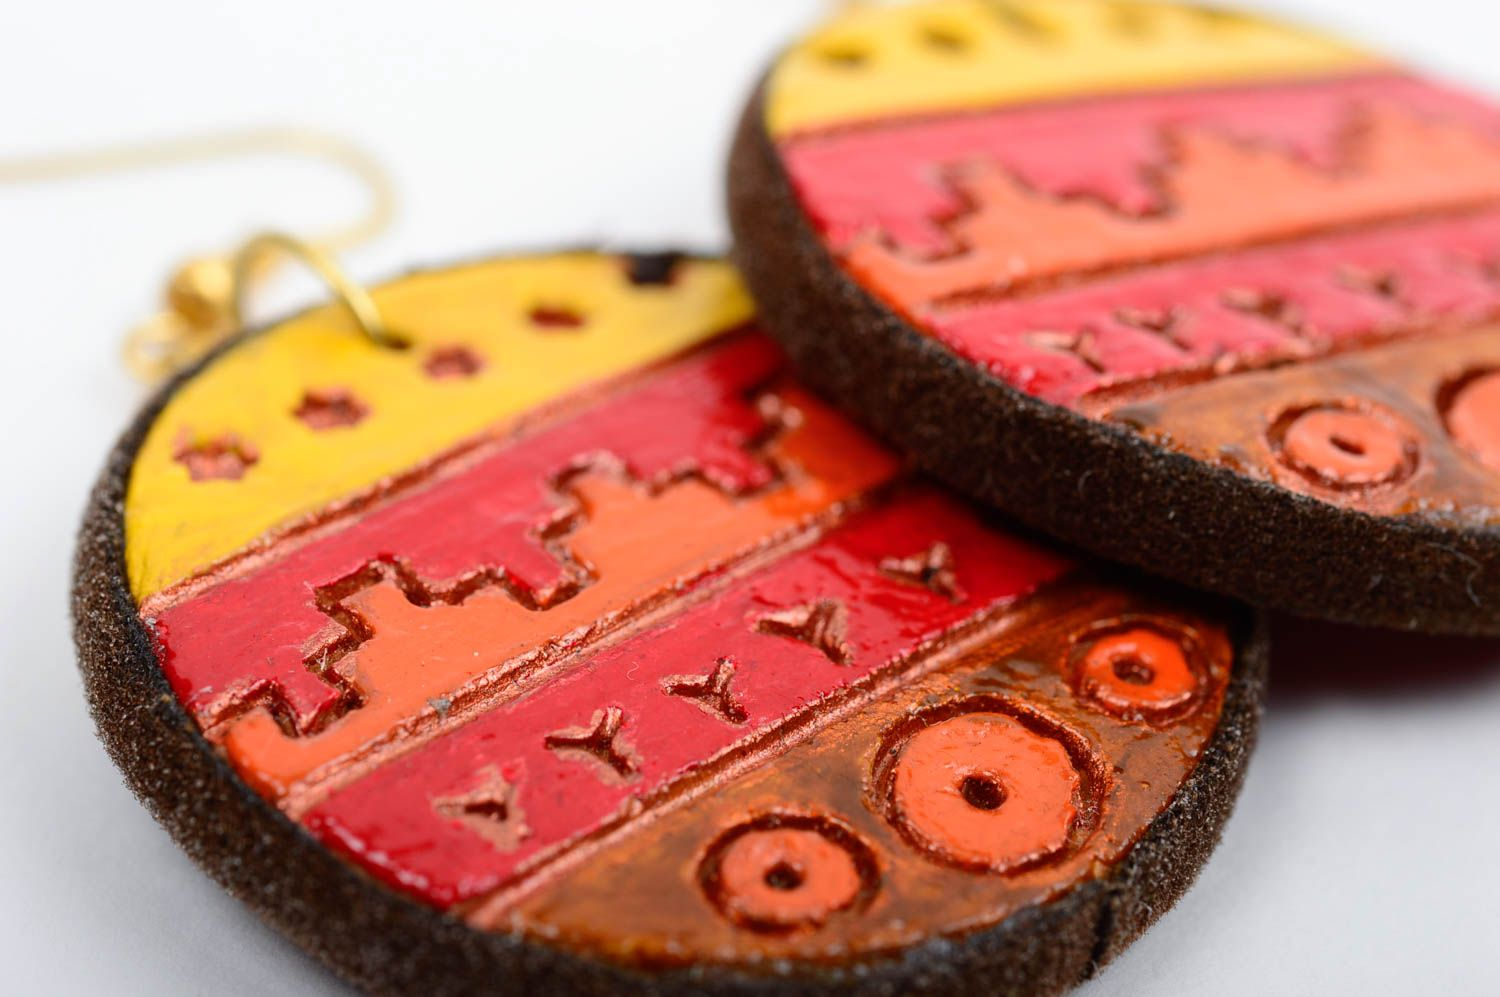 Unusual handmade clay earrings ceramic earrings fashion accessories for girls photo 4